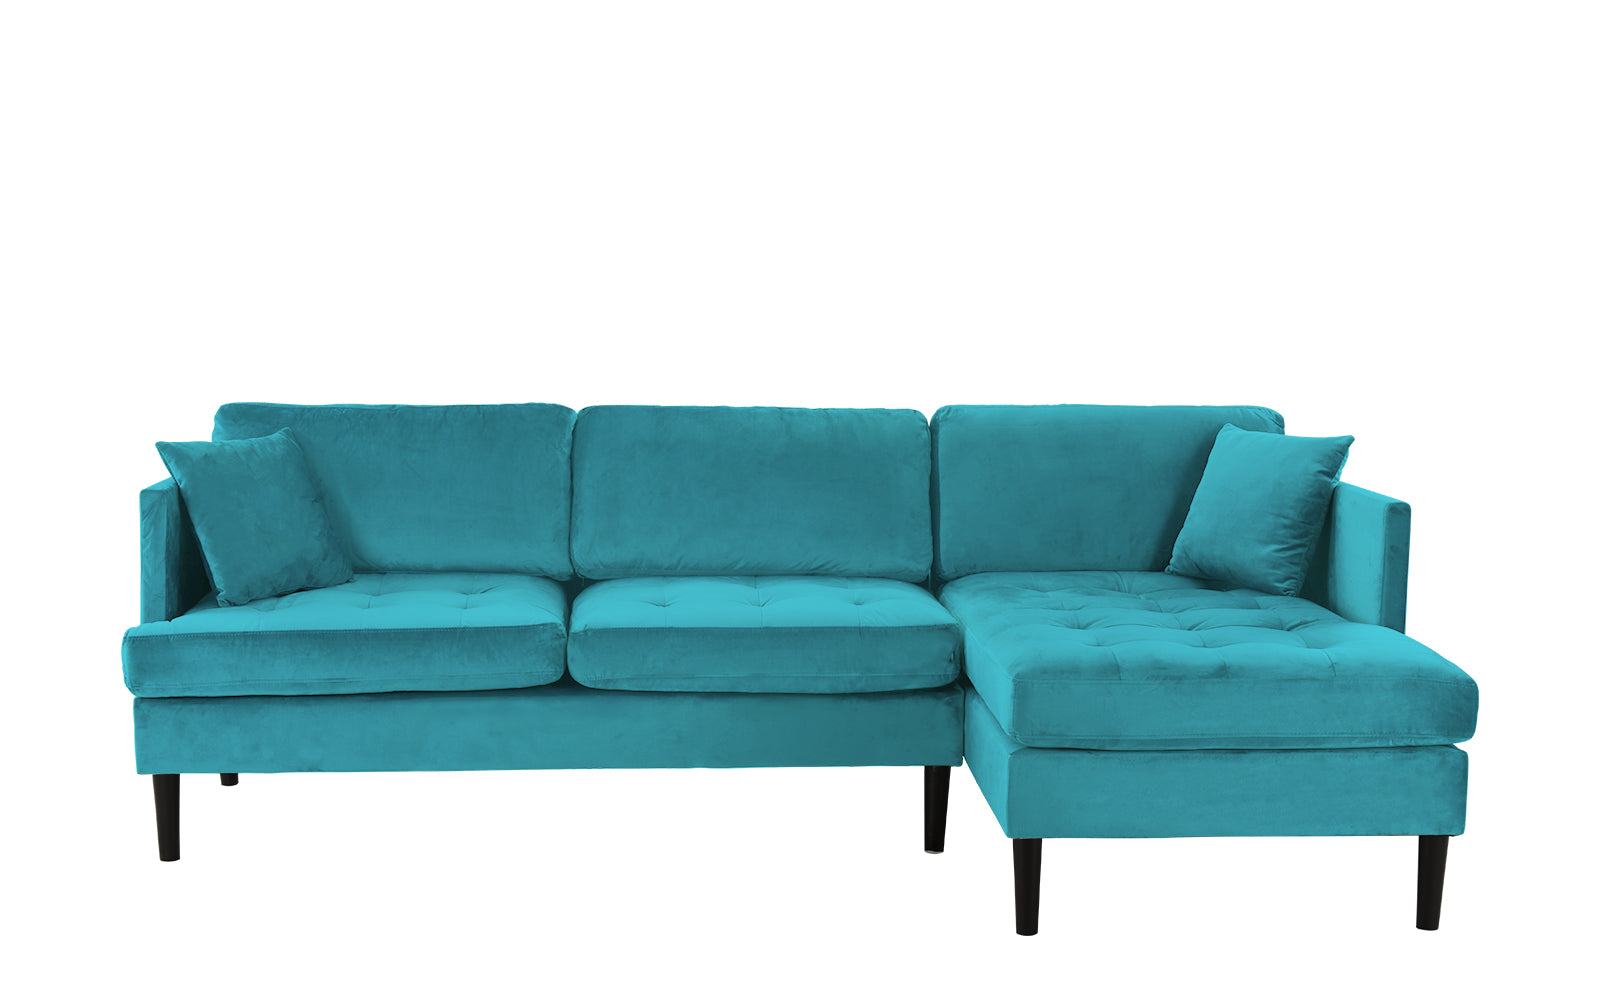 Velvet Sectional Sofa Image